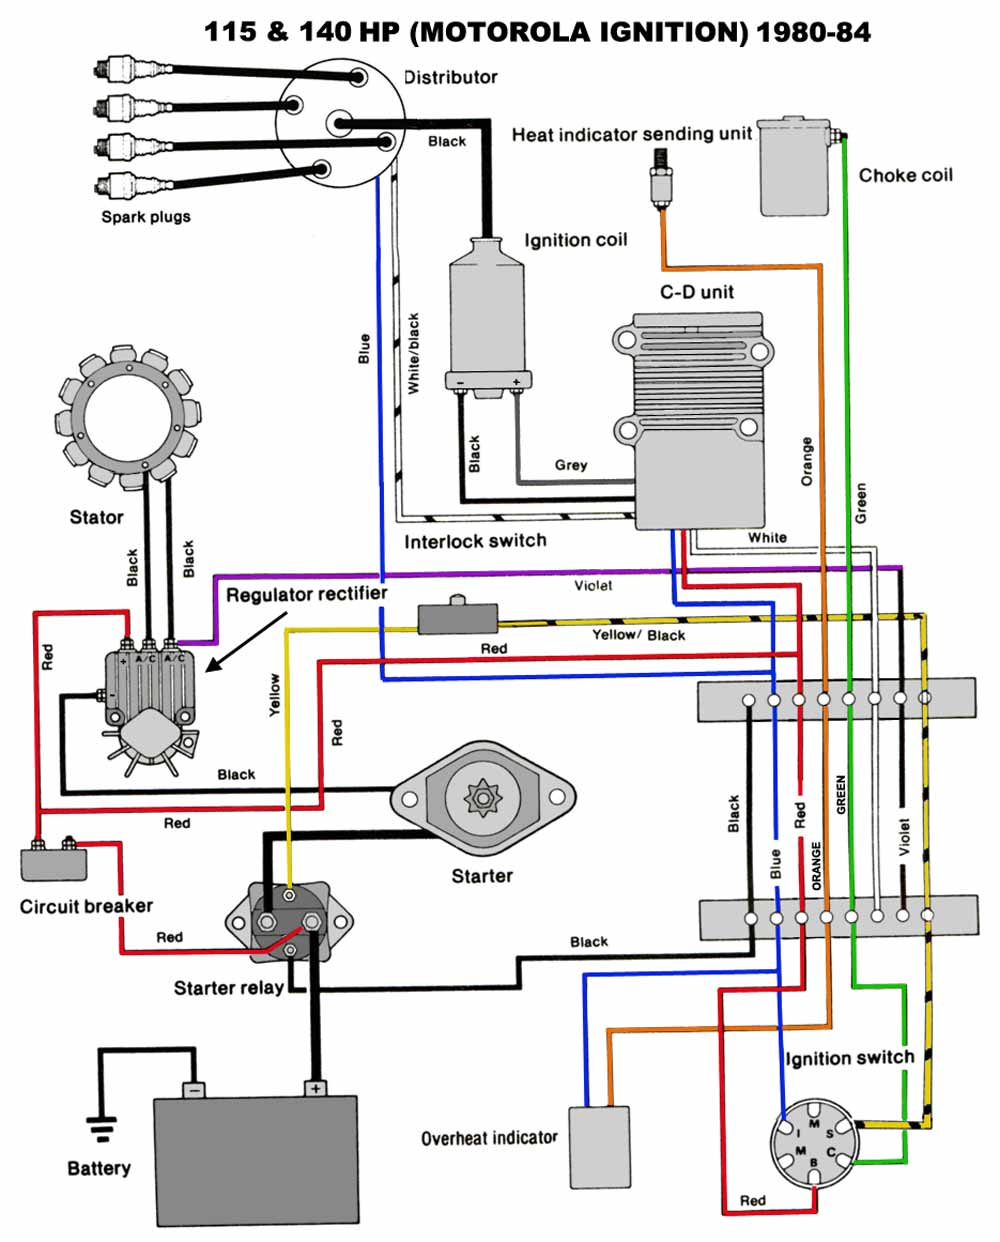 CHRYSLER OUTBOARD WIRING DIAGRAMS -- MASTERTECH MARINE on mercury white ignition switch wiring diagram, mercury key switch wiring diagram, mercury marine kill switch, mercury outboard control wiring diagram, mercury marine ignition switch connector,